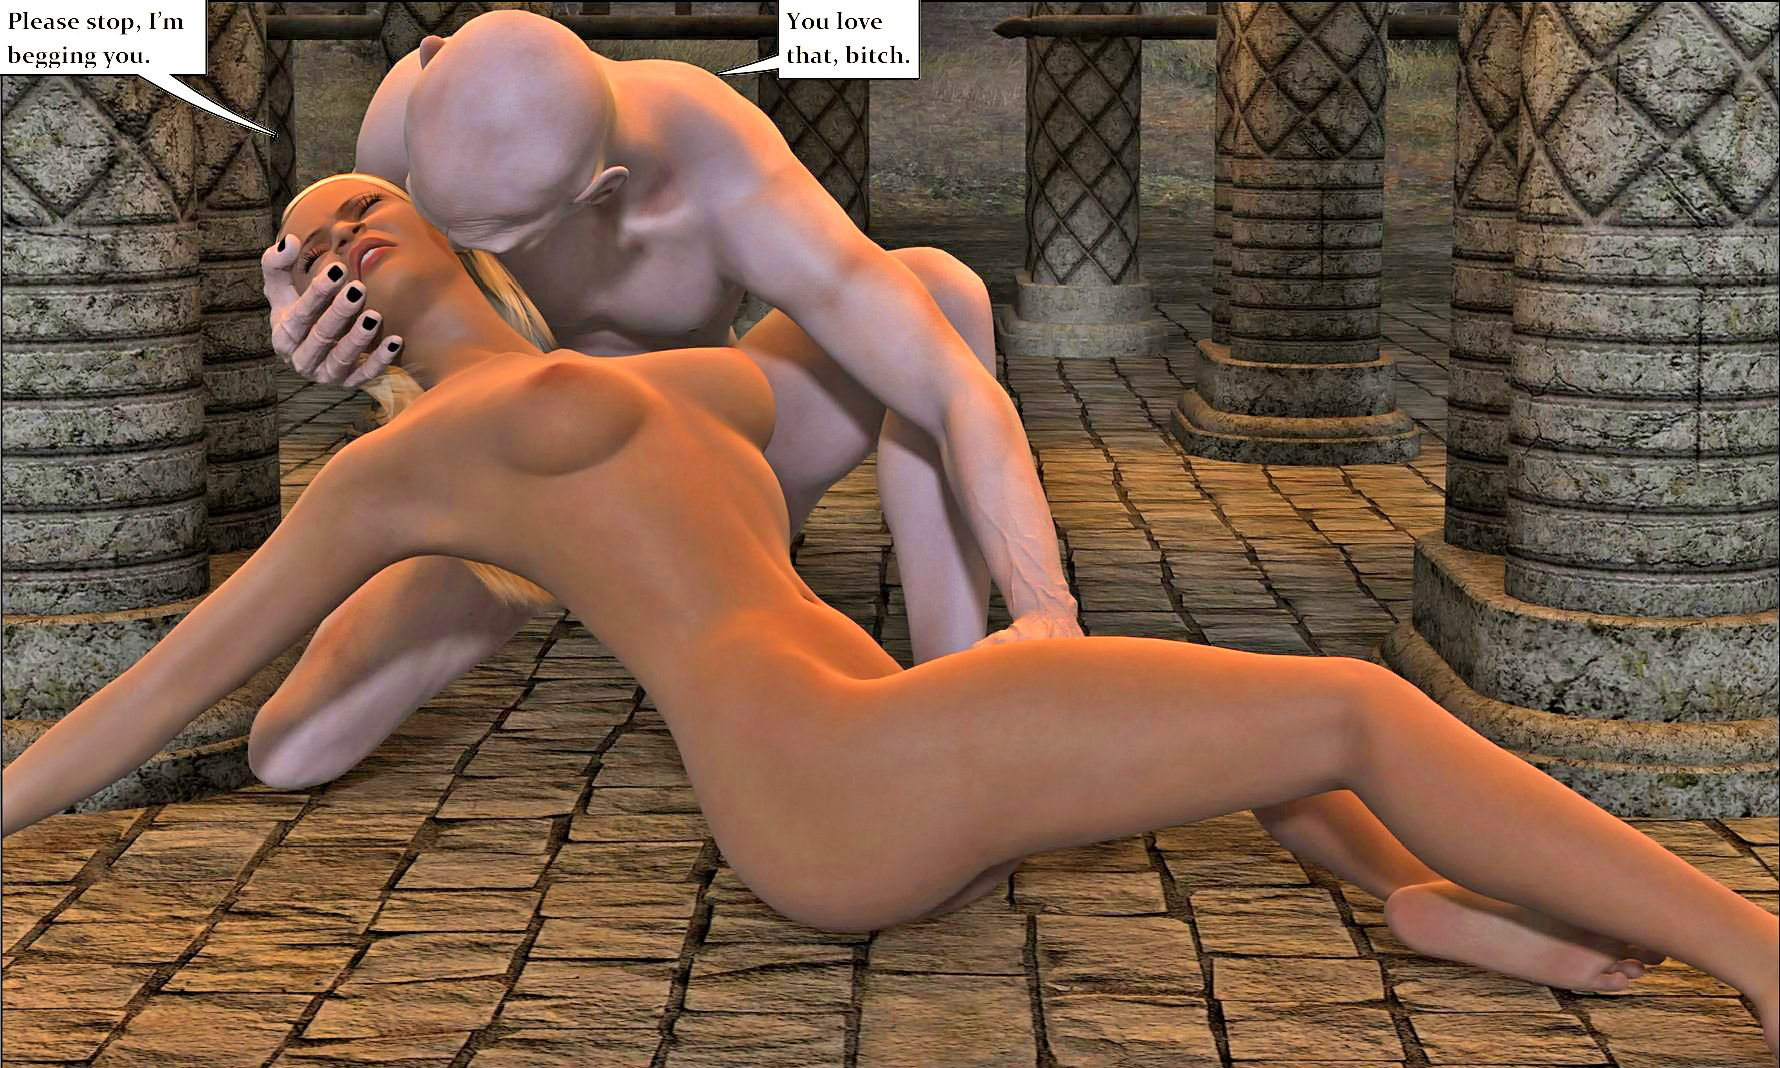 Tomb raider toon porn with monsters videos exposed tube